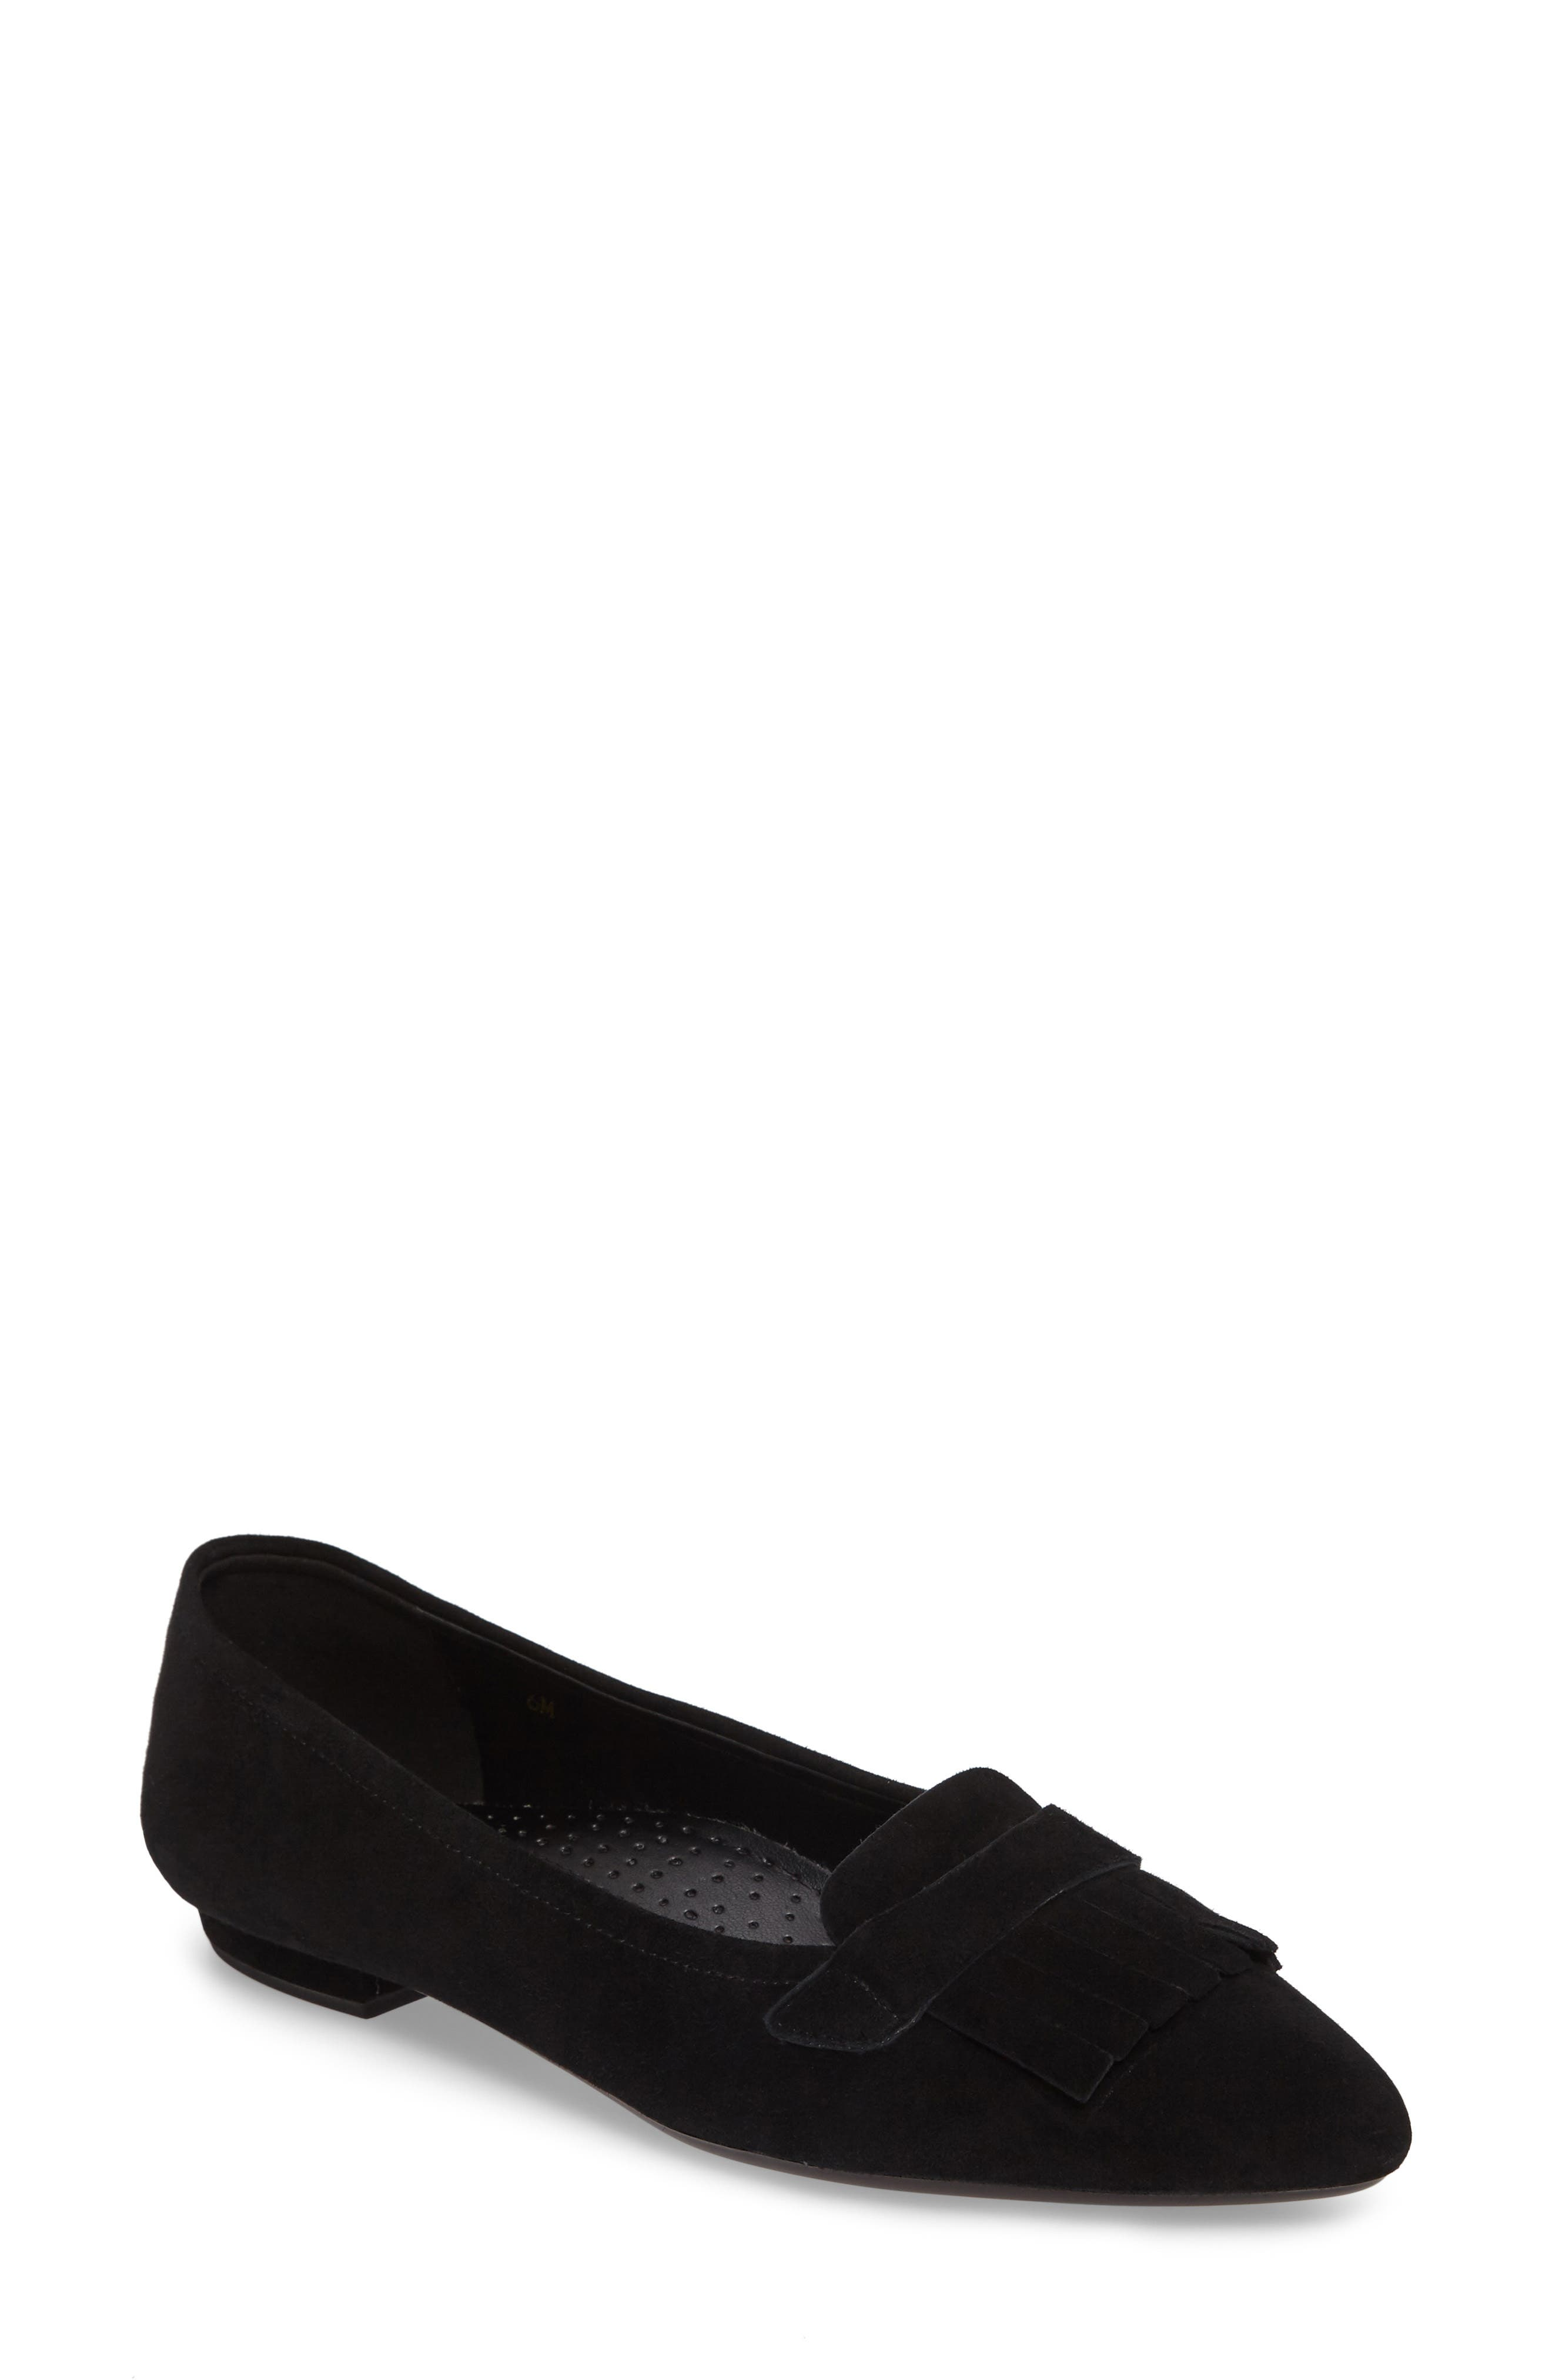 Gaea Loafer Flat,                             Main thumbnail 1, color,                             001